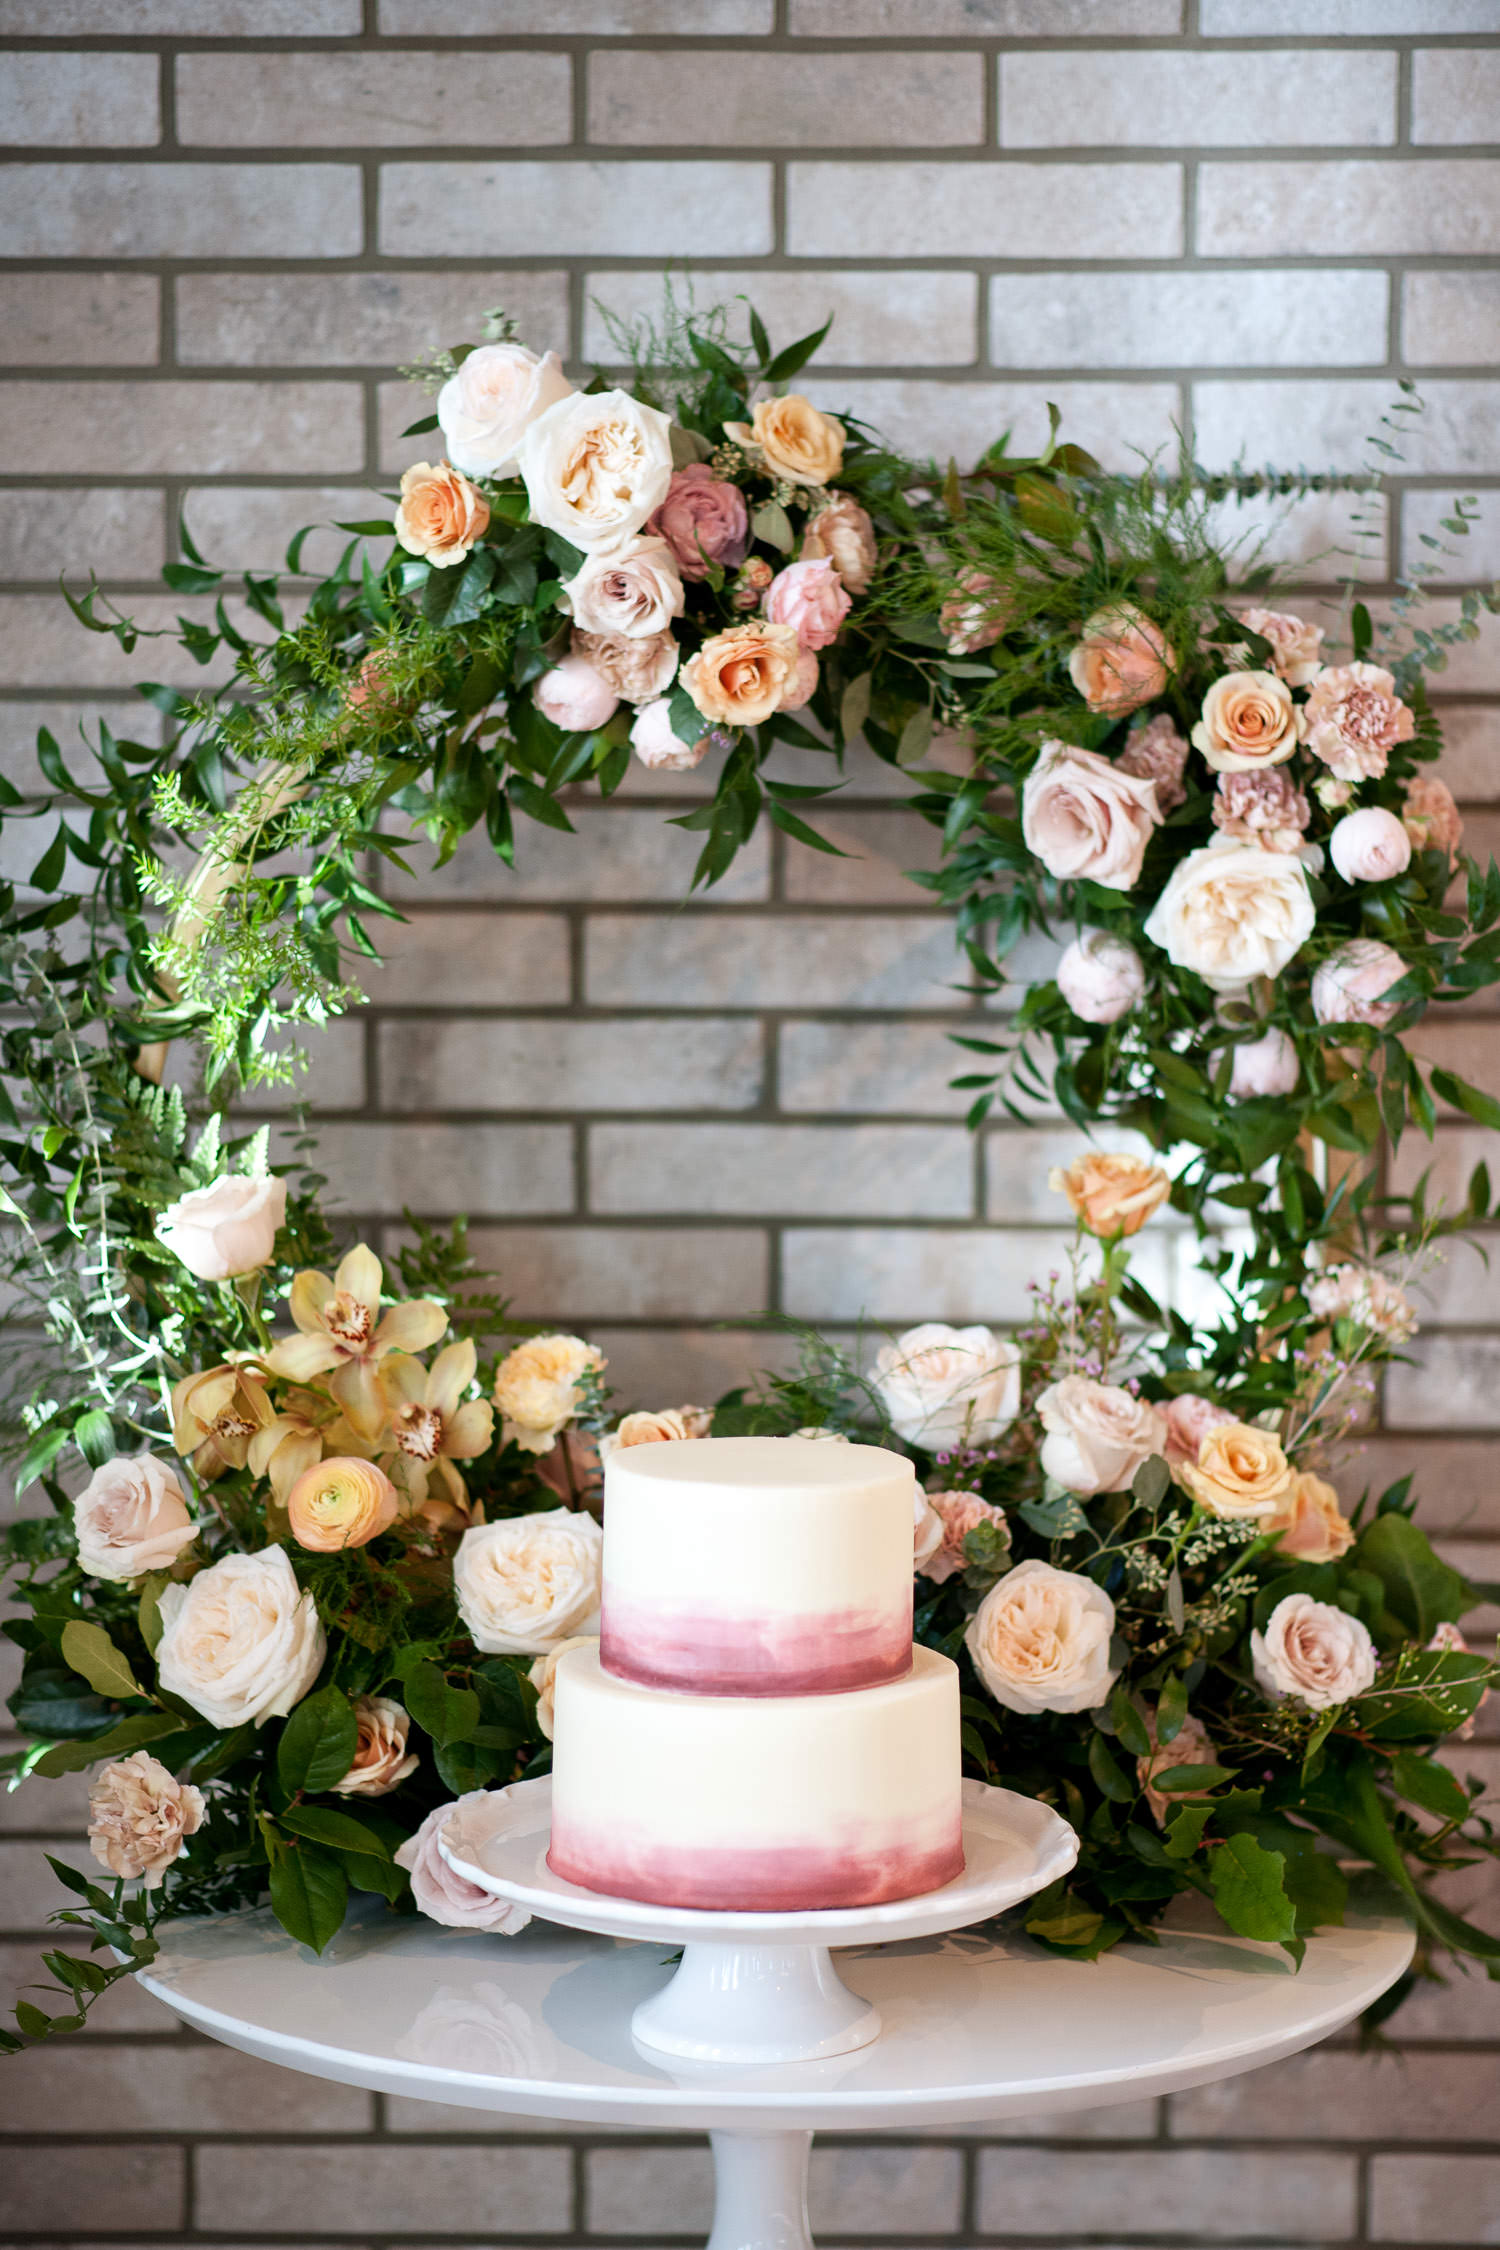 Wedding cake by Crave captured by Calgary wedding photographer Tara Whittaker